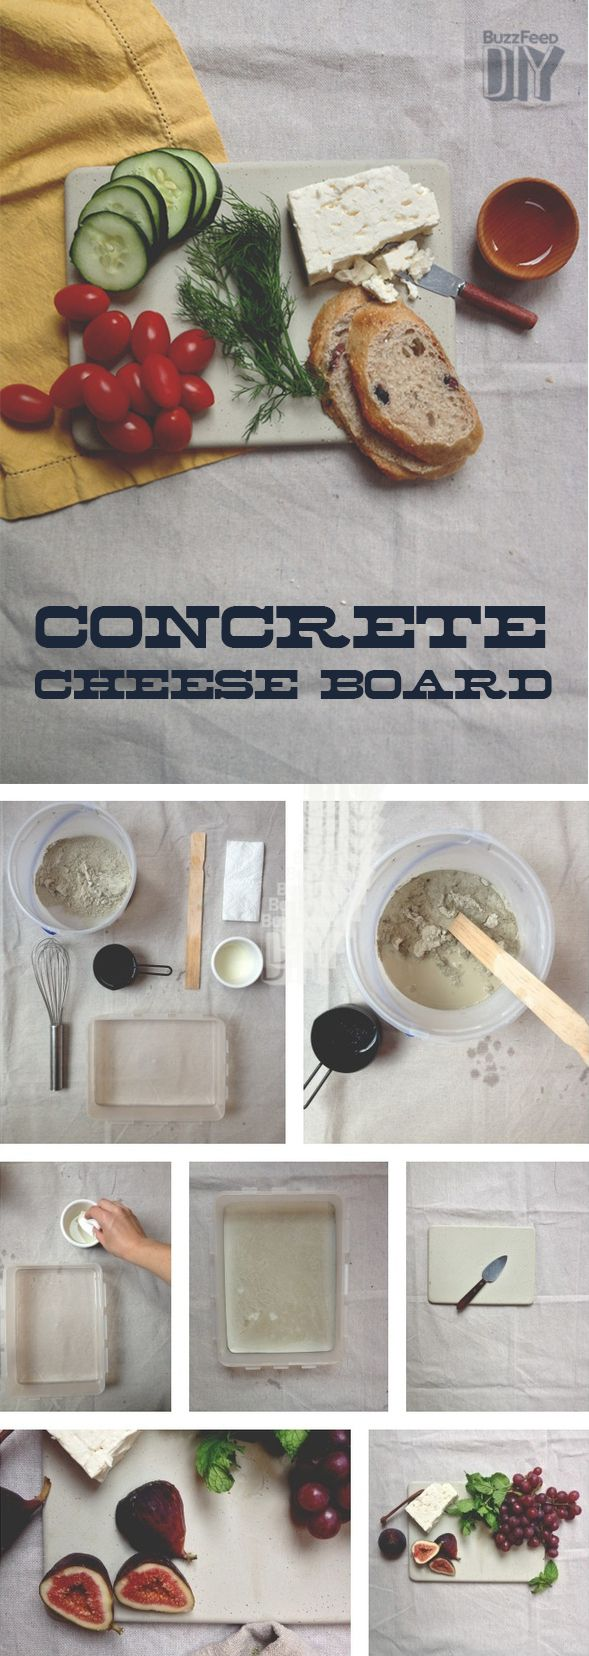 "<a href=""http://www.buzzfeed.com/pippa/cheeseboards-to-impress-your-guests"" target=""_blank""><strong>DIY Concrete Cheese Board via A Daily Something</strong></a>"